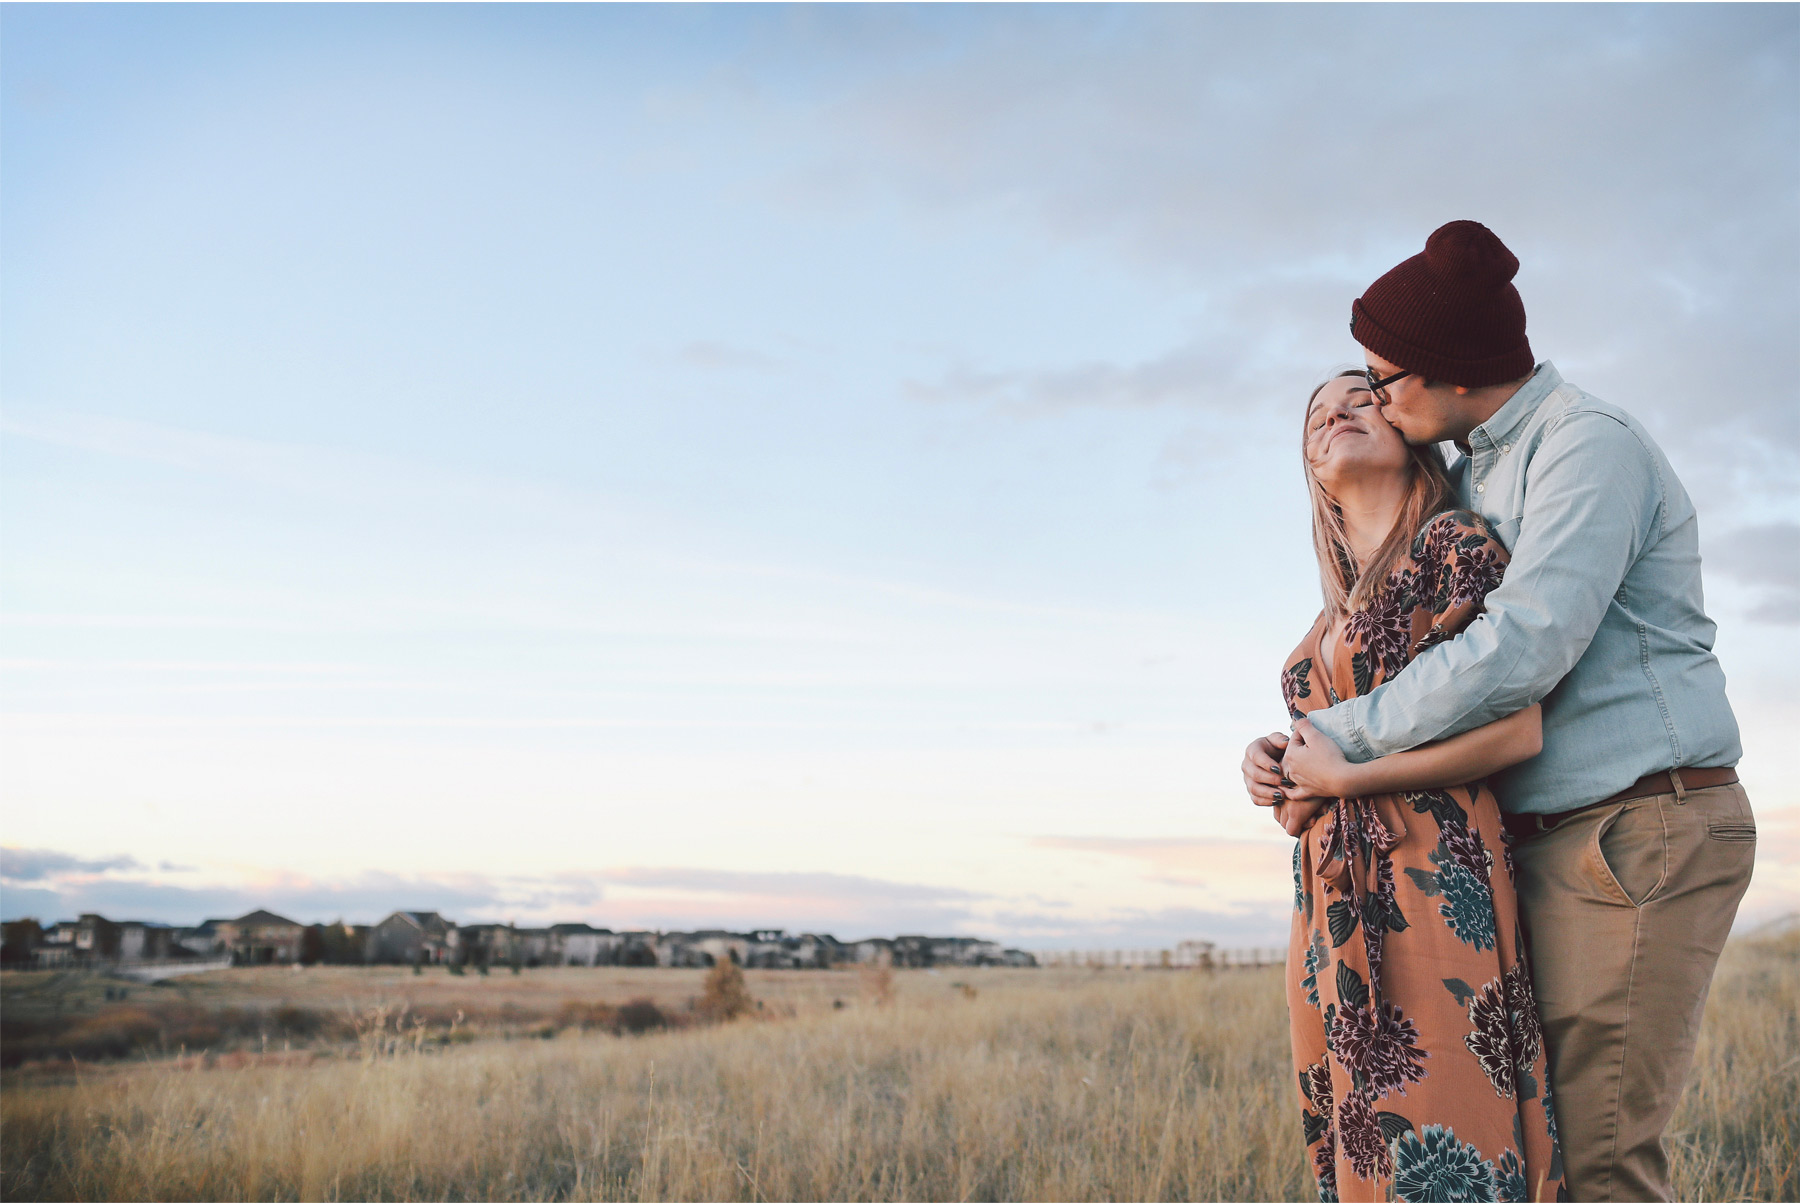 13-Vick-Photography-Fly-to-You-Engagement-Session-Denver-Colorado-Couple-Field-Sunset-Danielle-and-Tom.jpg